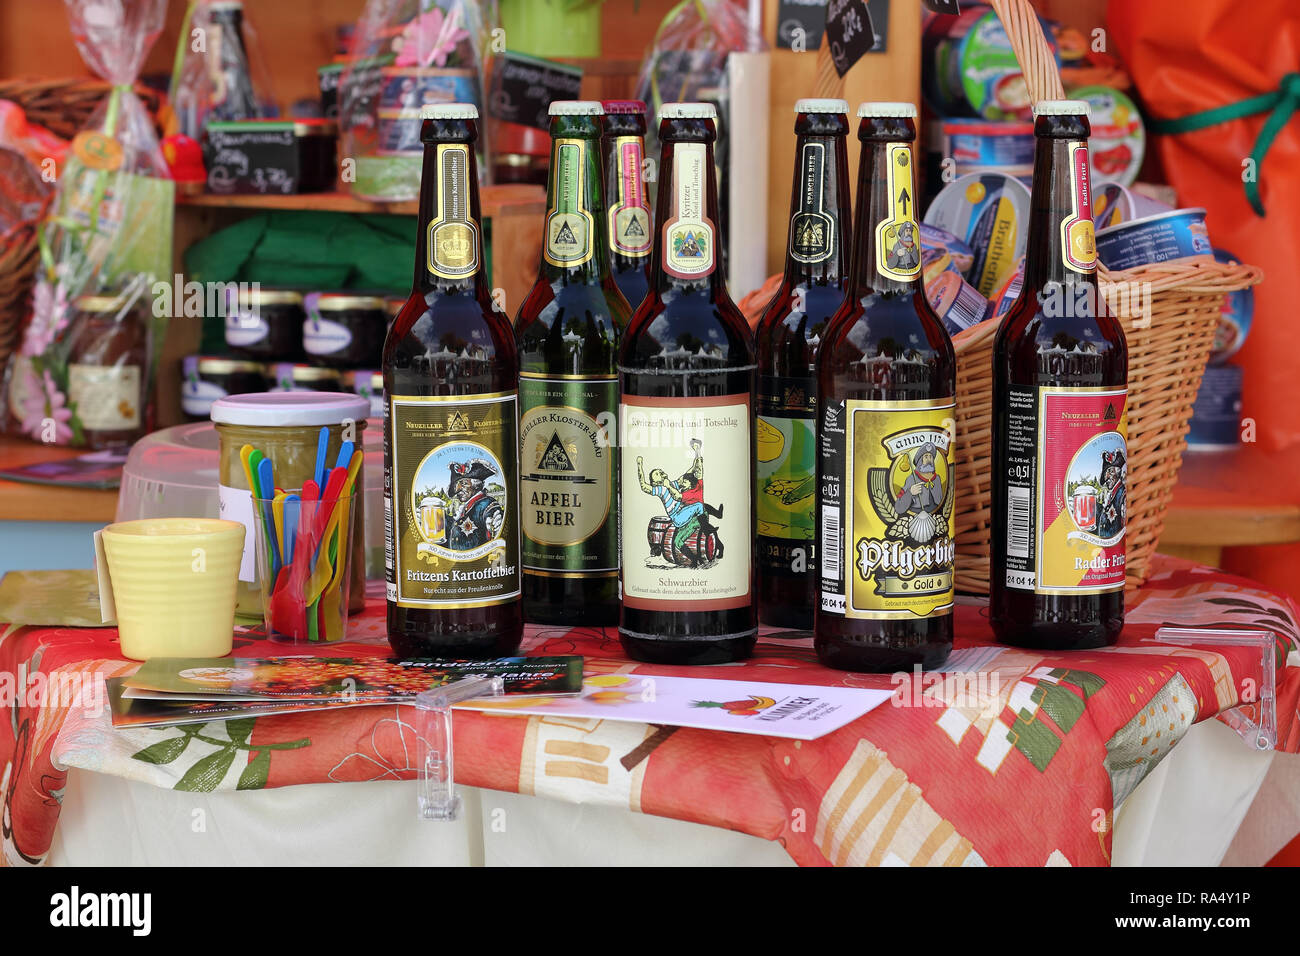 Beer from Brandenburg region at a market stall - Stock Image